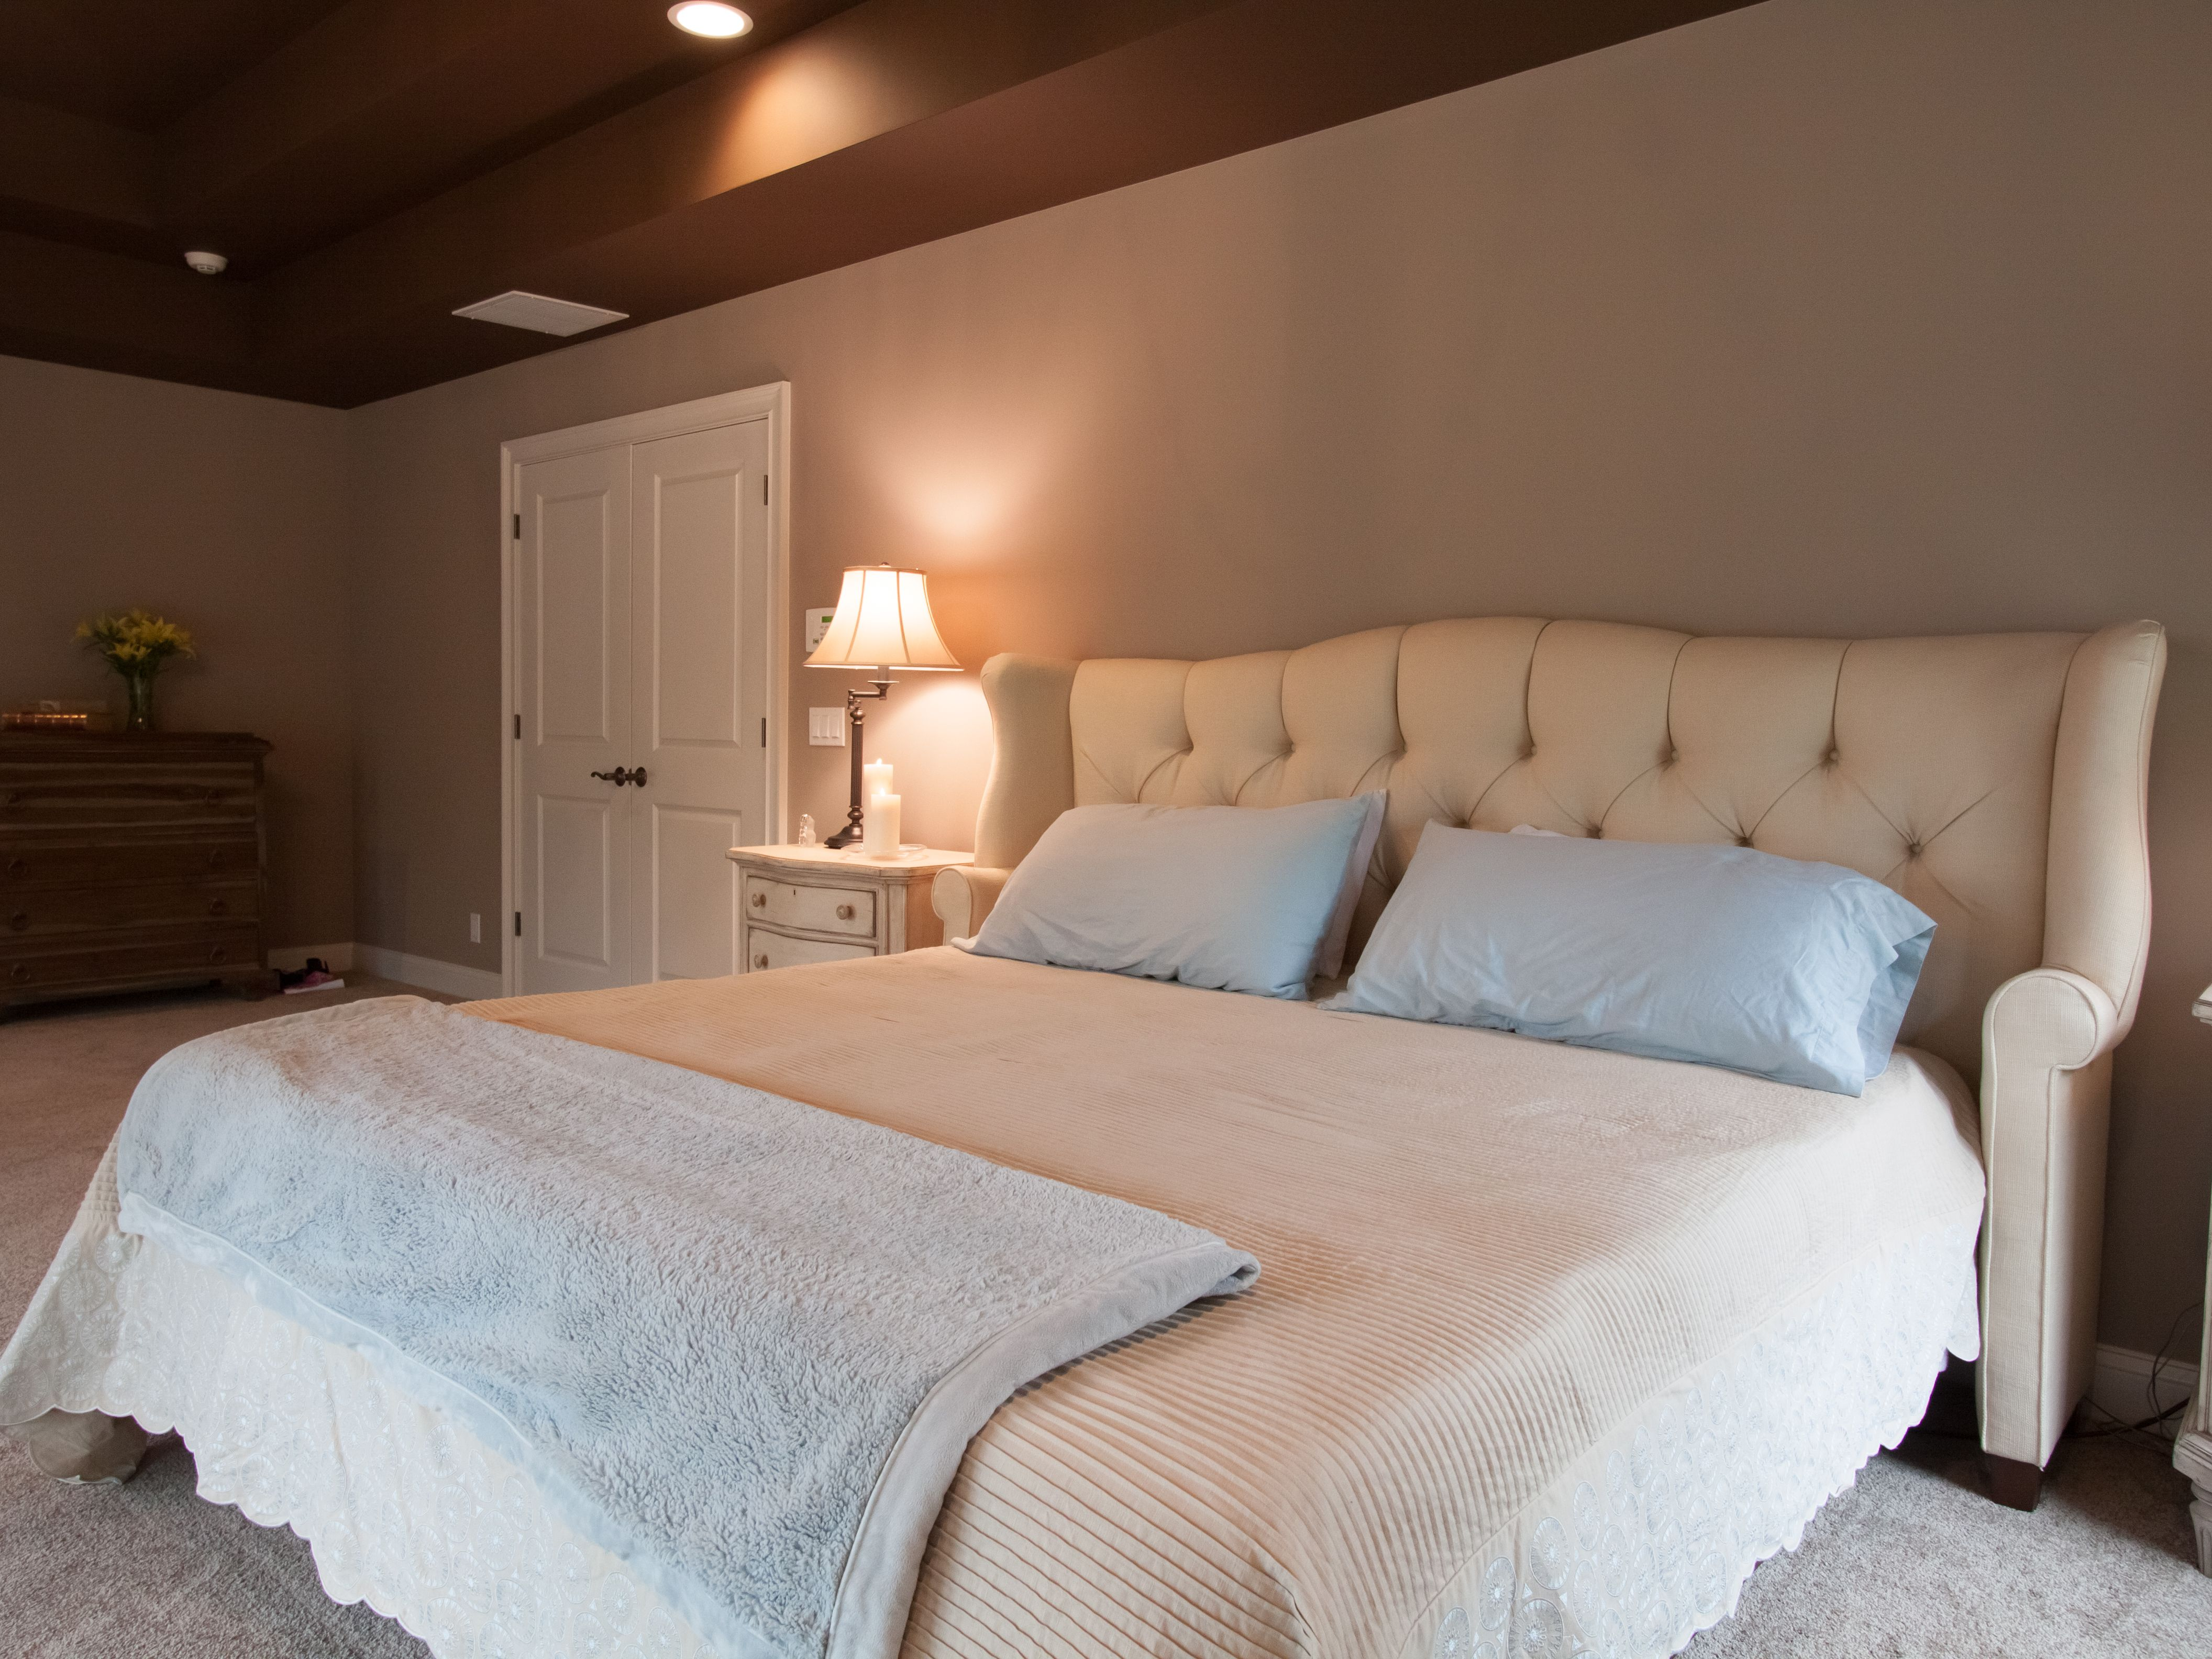 Plenty of space in this renovated bedroom.